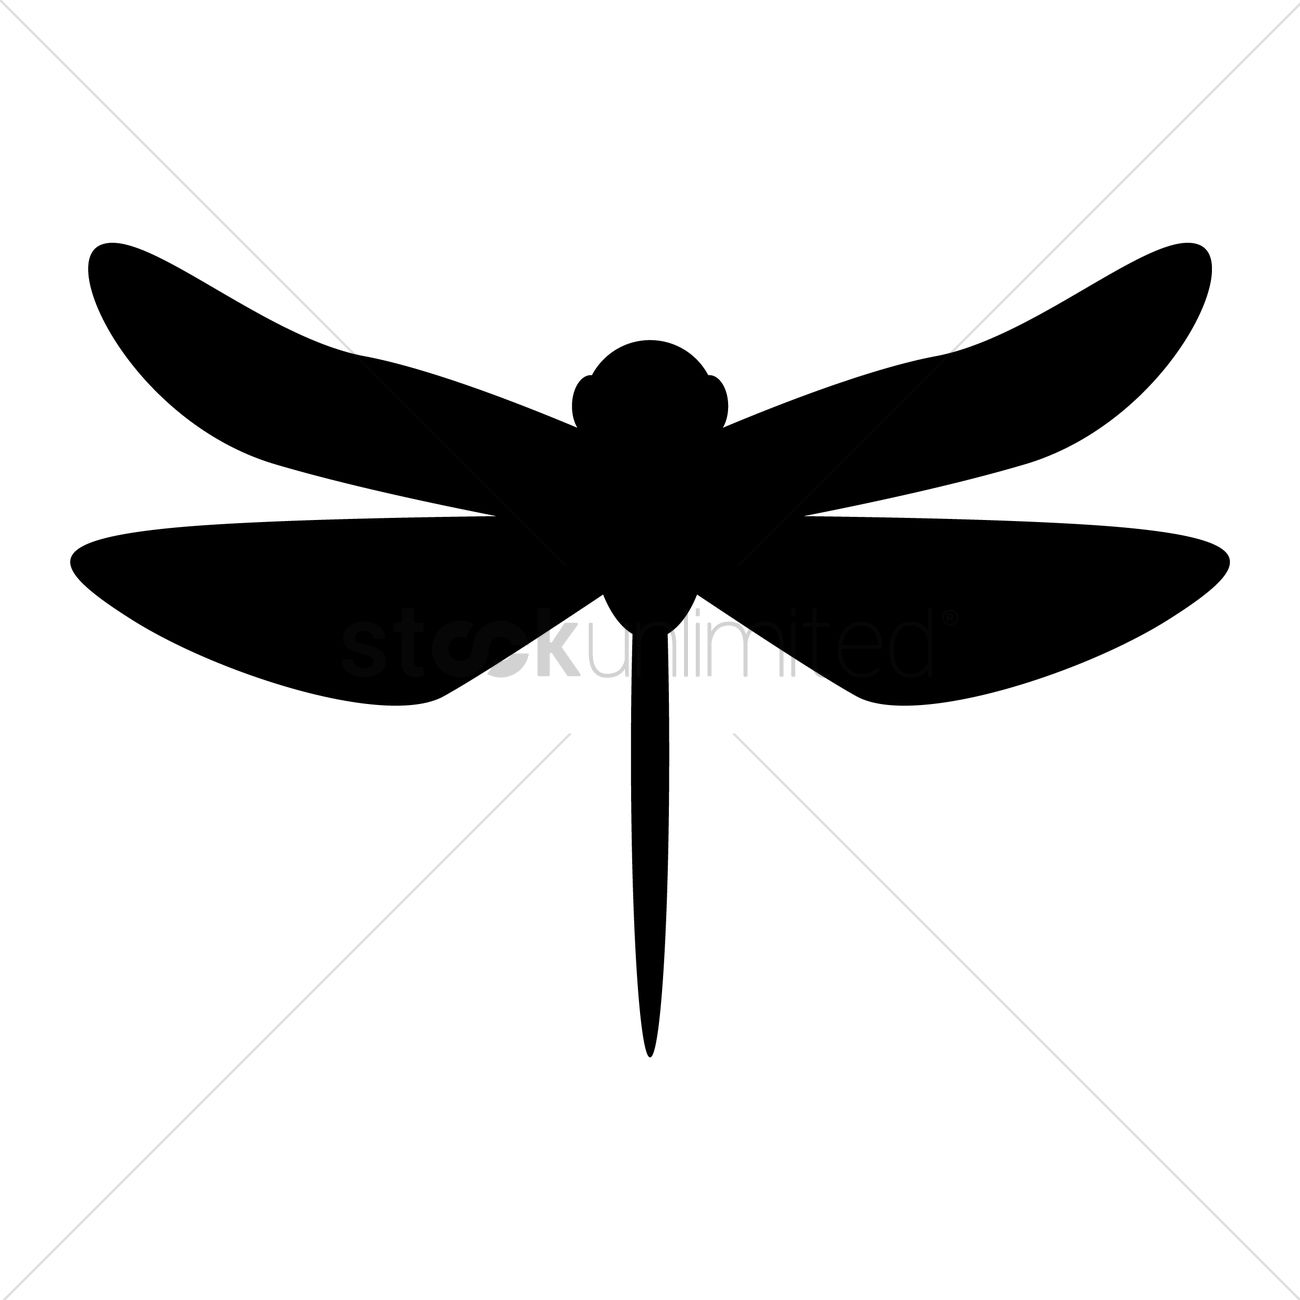 dragonfly silhouette vector image 1955805 stockunlimited